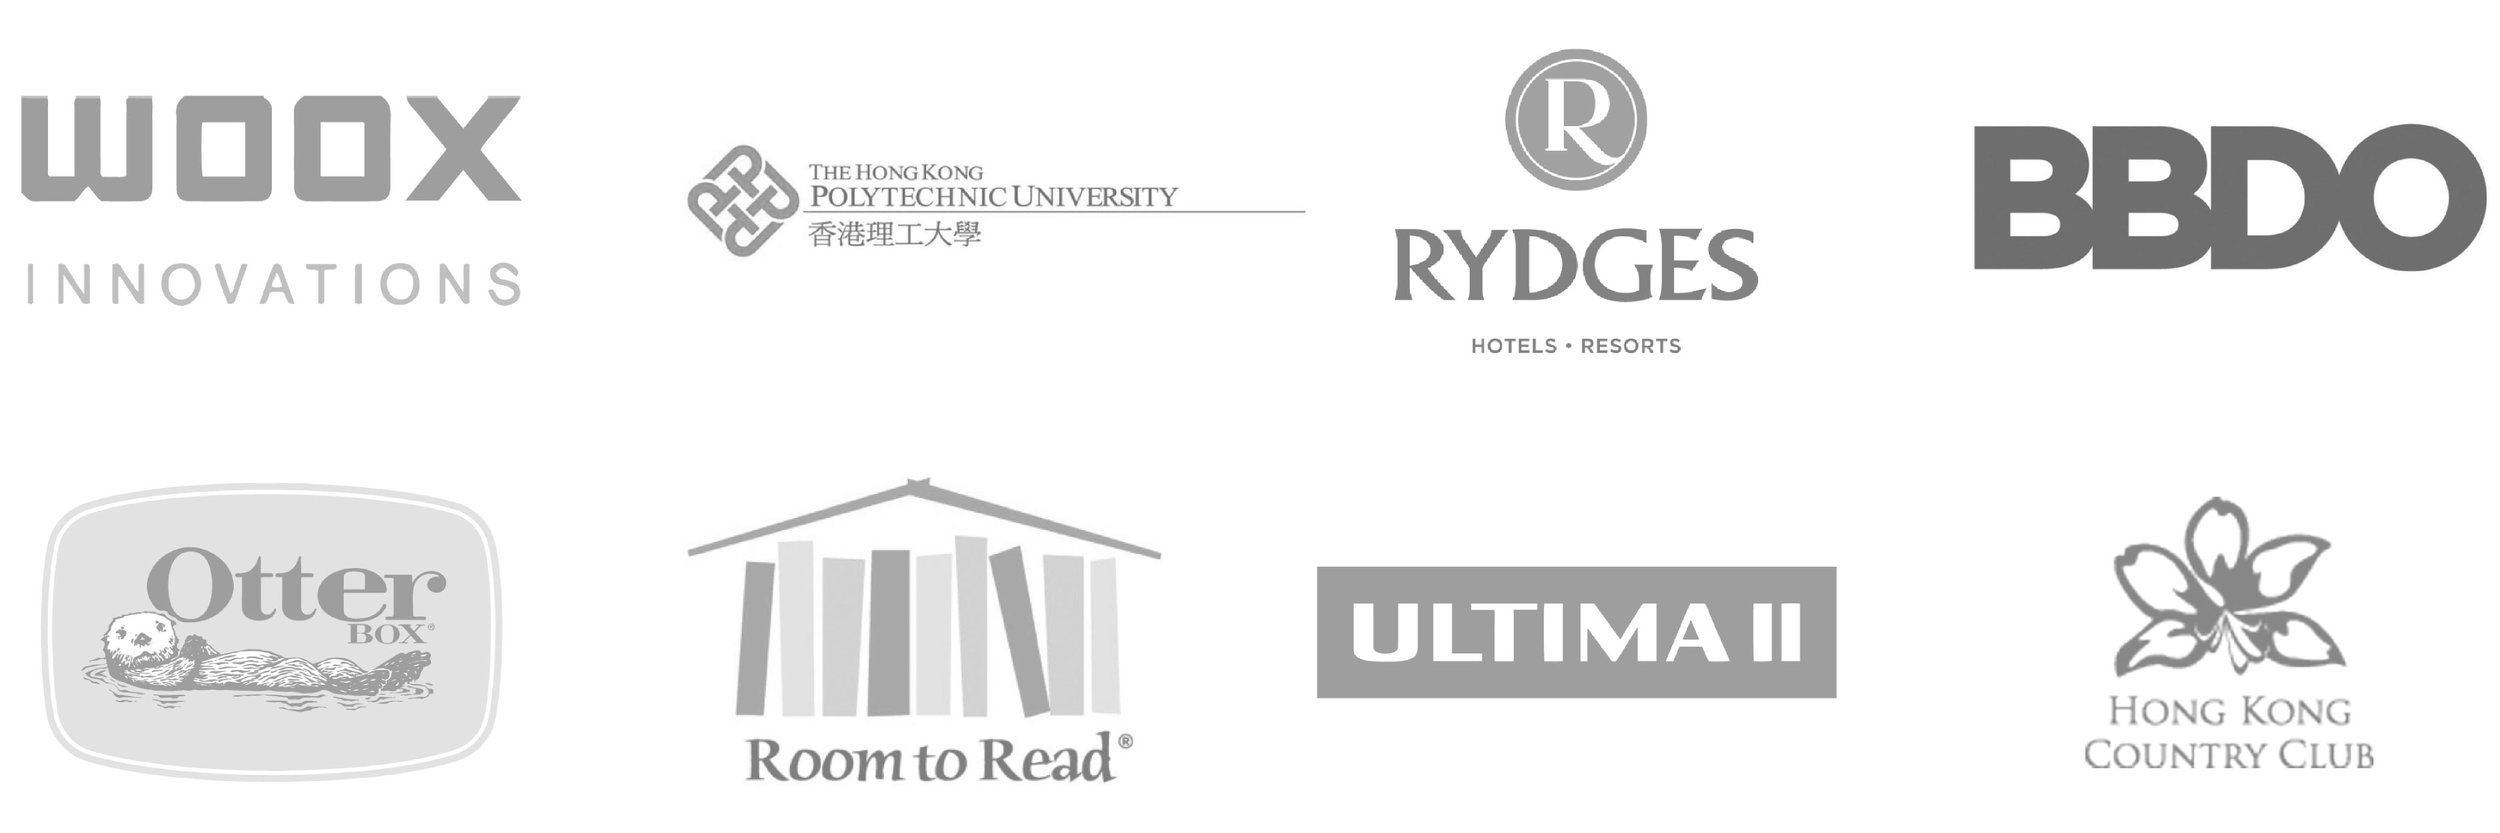 Page2-Logos+Woox-Innovations+Hong-Kong-Polytechnic-University+RYDGES-Hotels-and-Resorts+BBDO+Otter-Box-+-Room-To-Read+Ultima-II+Hong-Kong-Country-Club.jpg